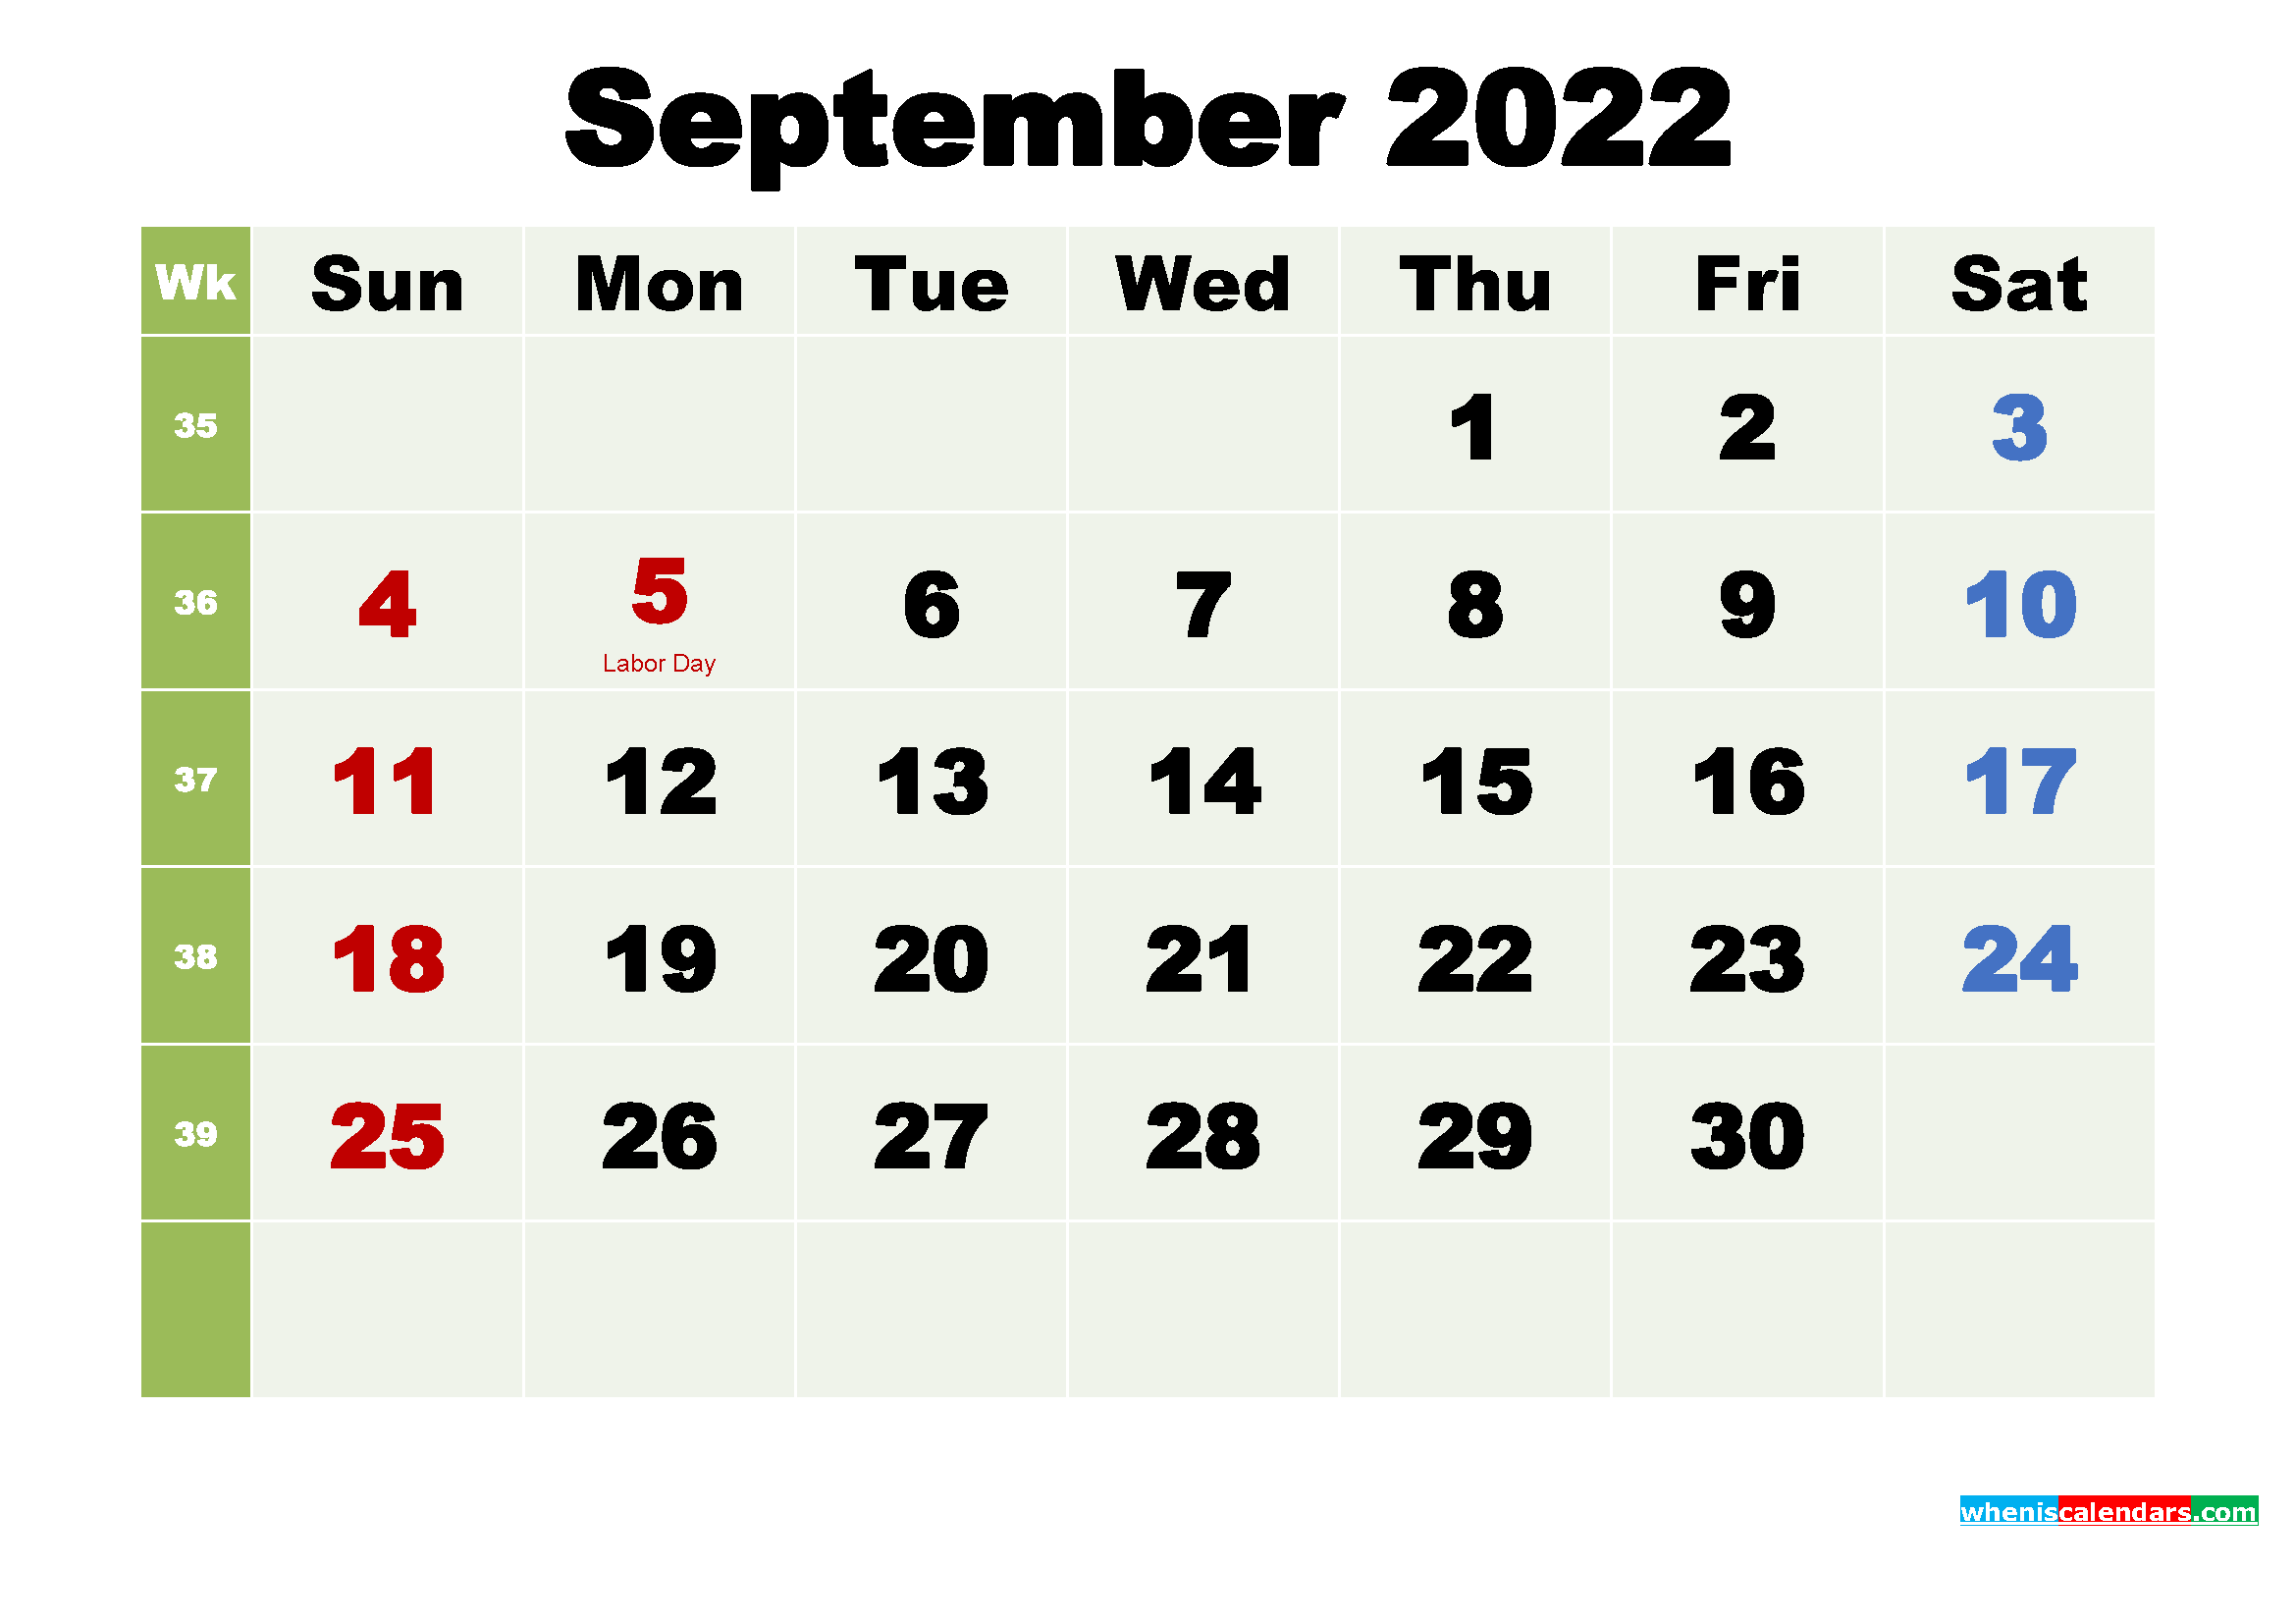 September 2022 Calendar Wallpaper High Resolution